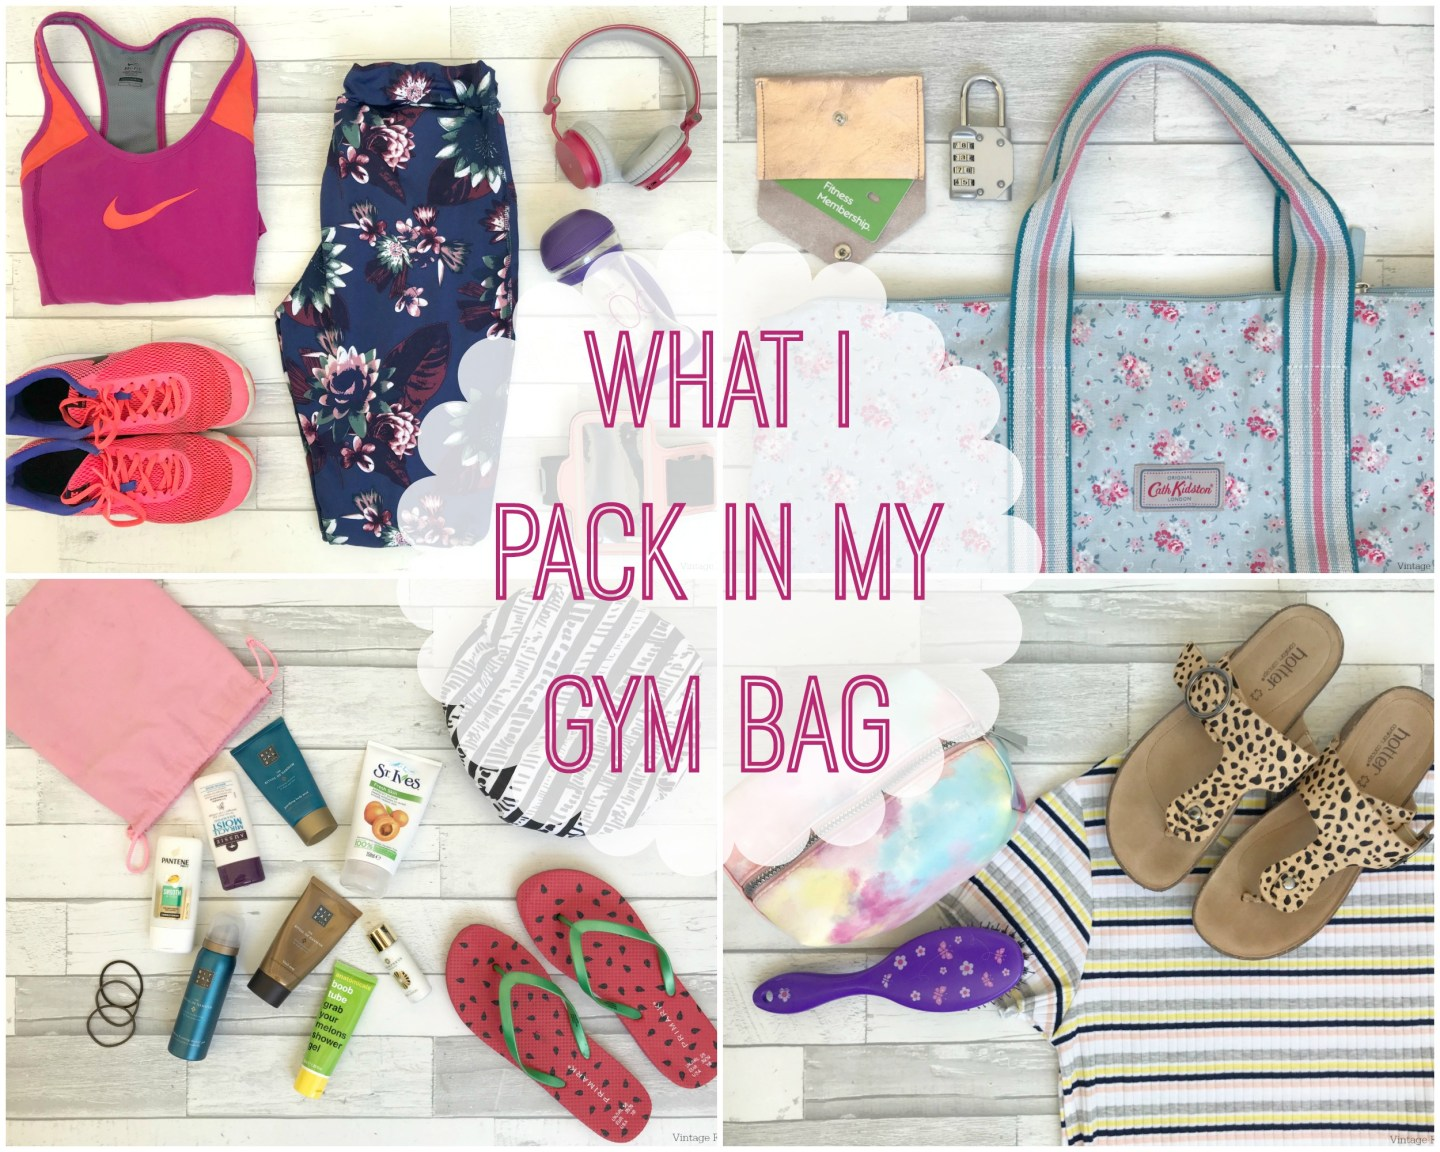 Health and Fitness – What I Pack in My Gym Bag